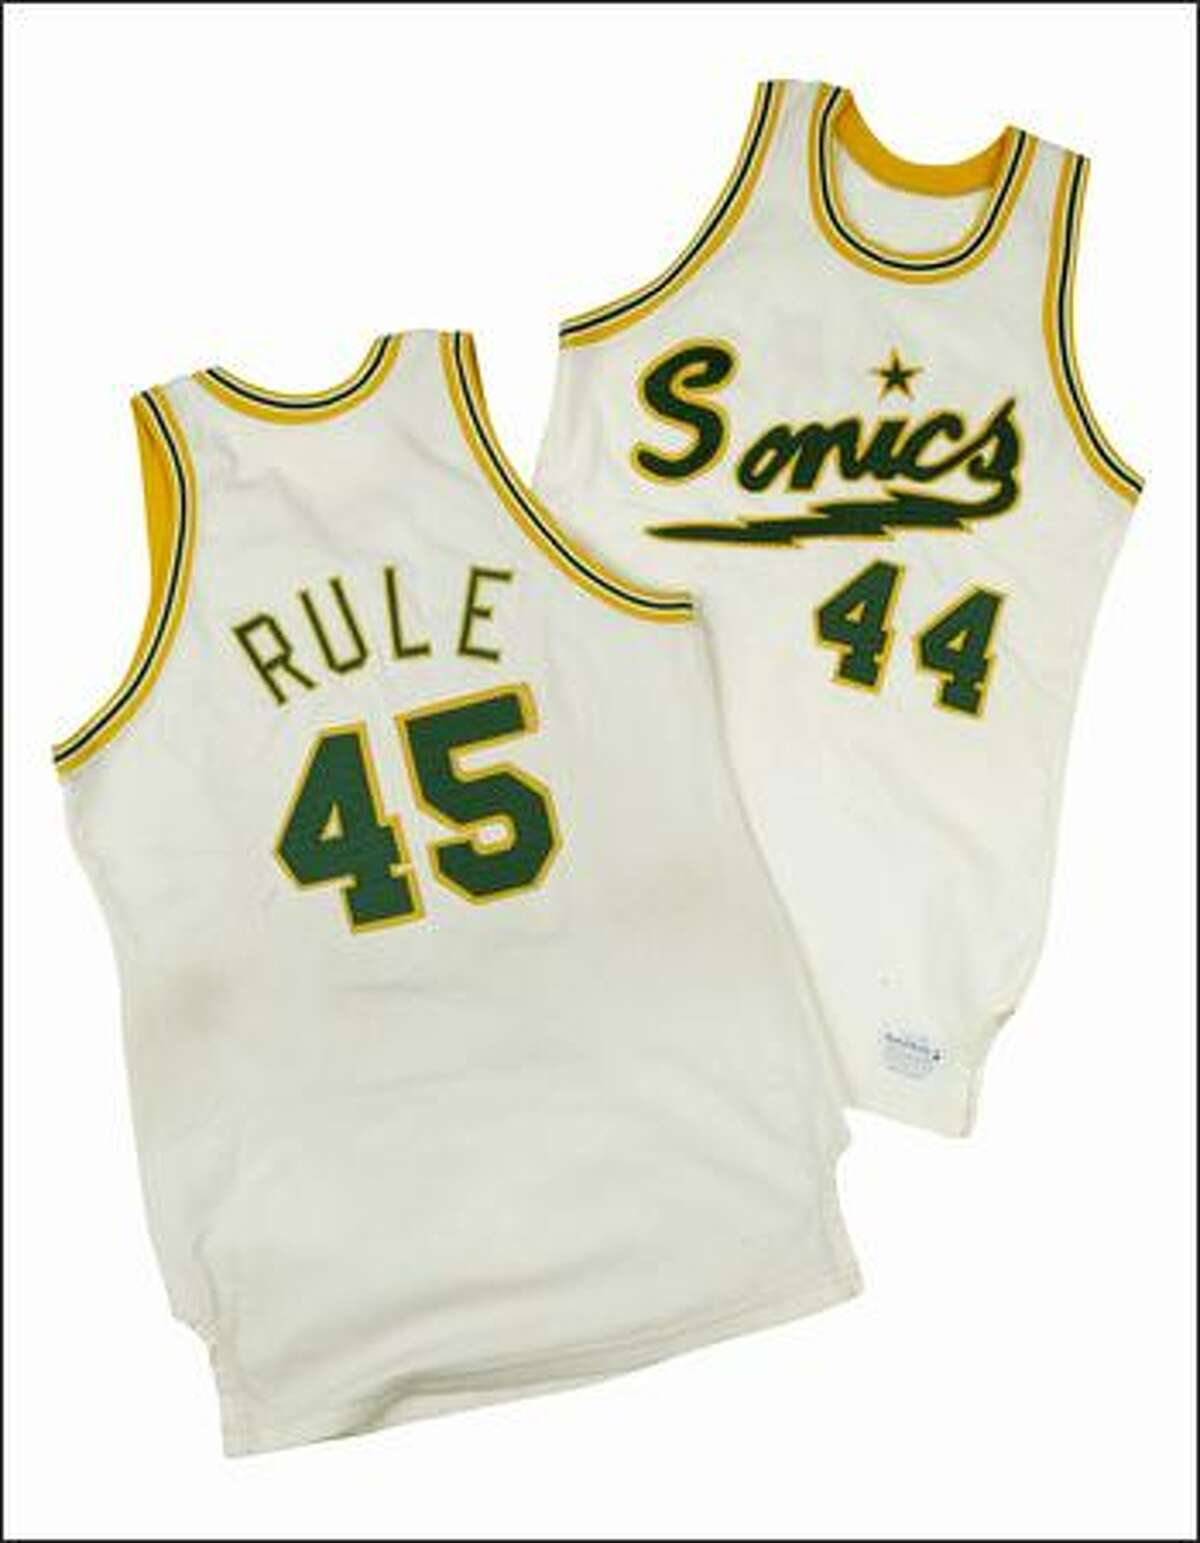 Bob Rule played forward and center for the original Sonics. One of his teammates was No. 44, Rod Thorn, a guard who went on to be the NBA's executive vice president of basketball operations. Thorn is currently president of the New Jersey Nets.